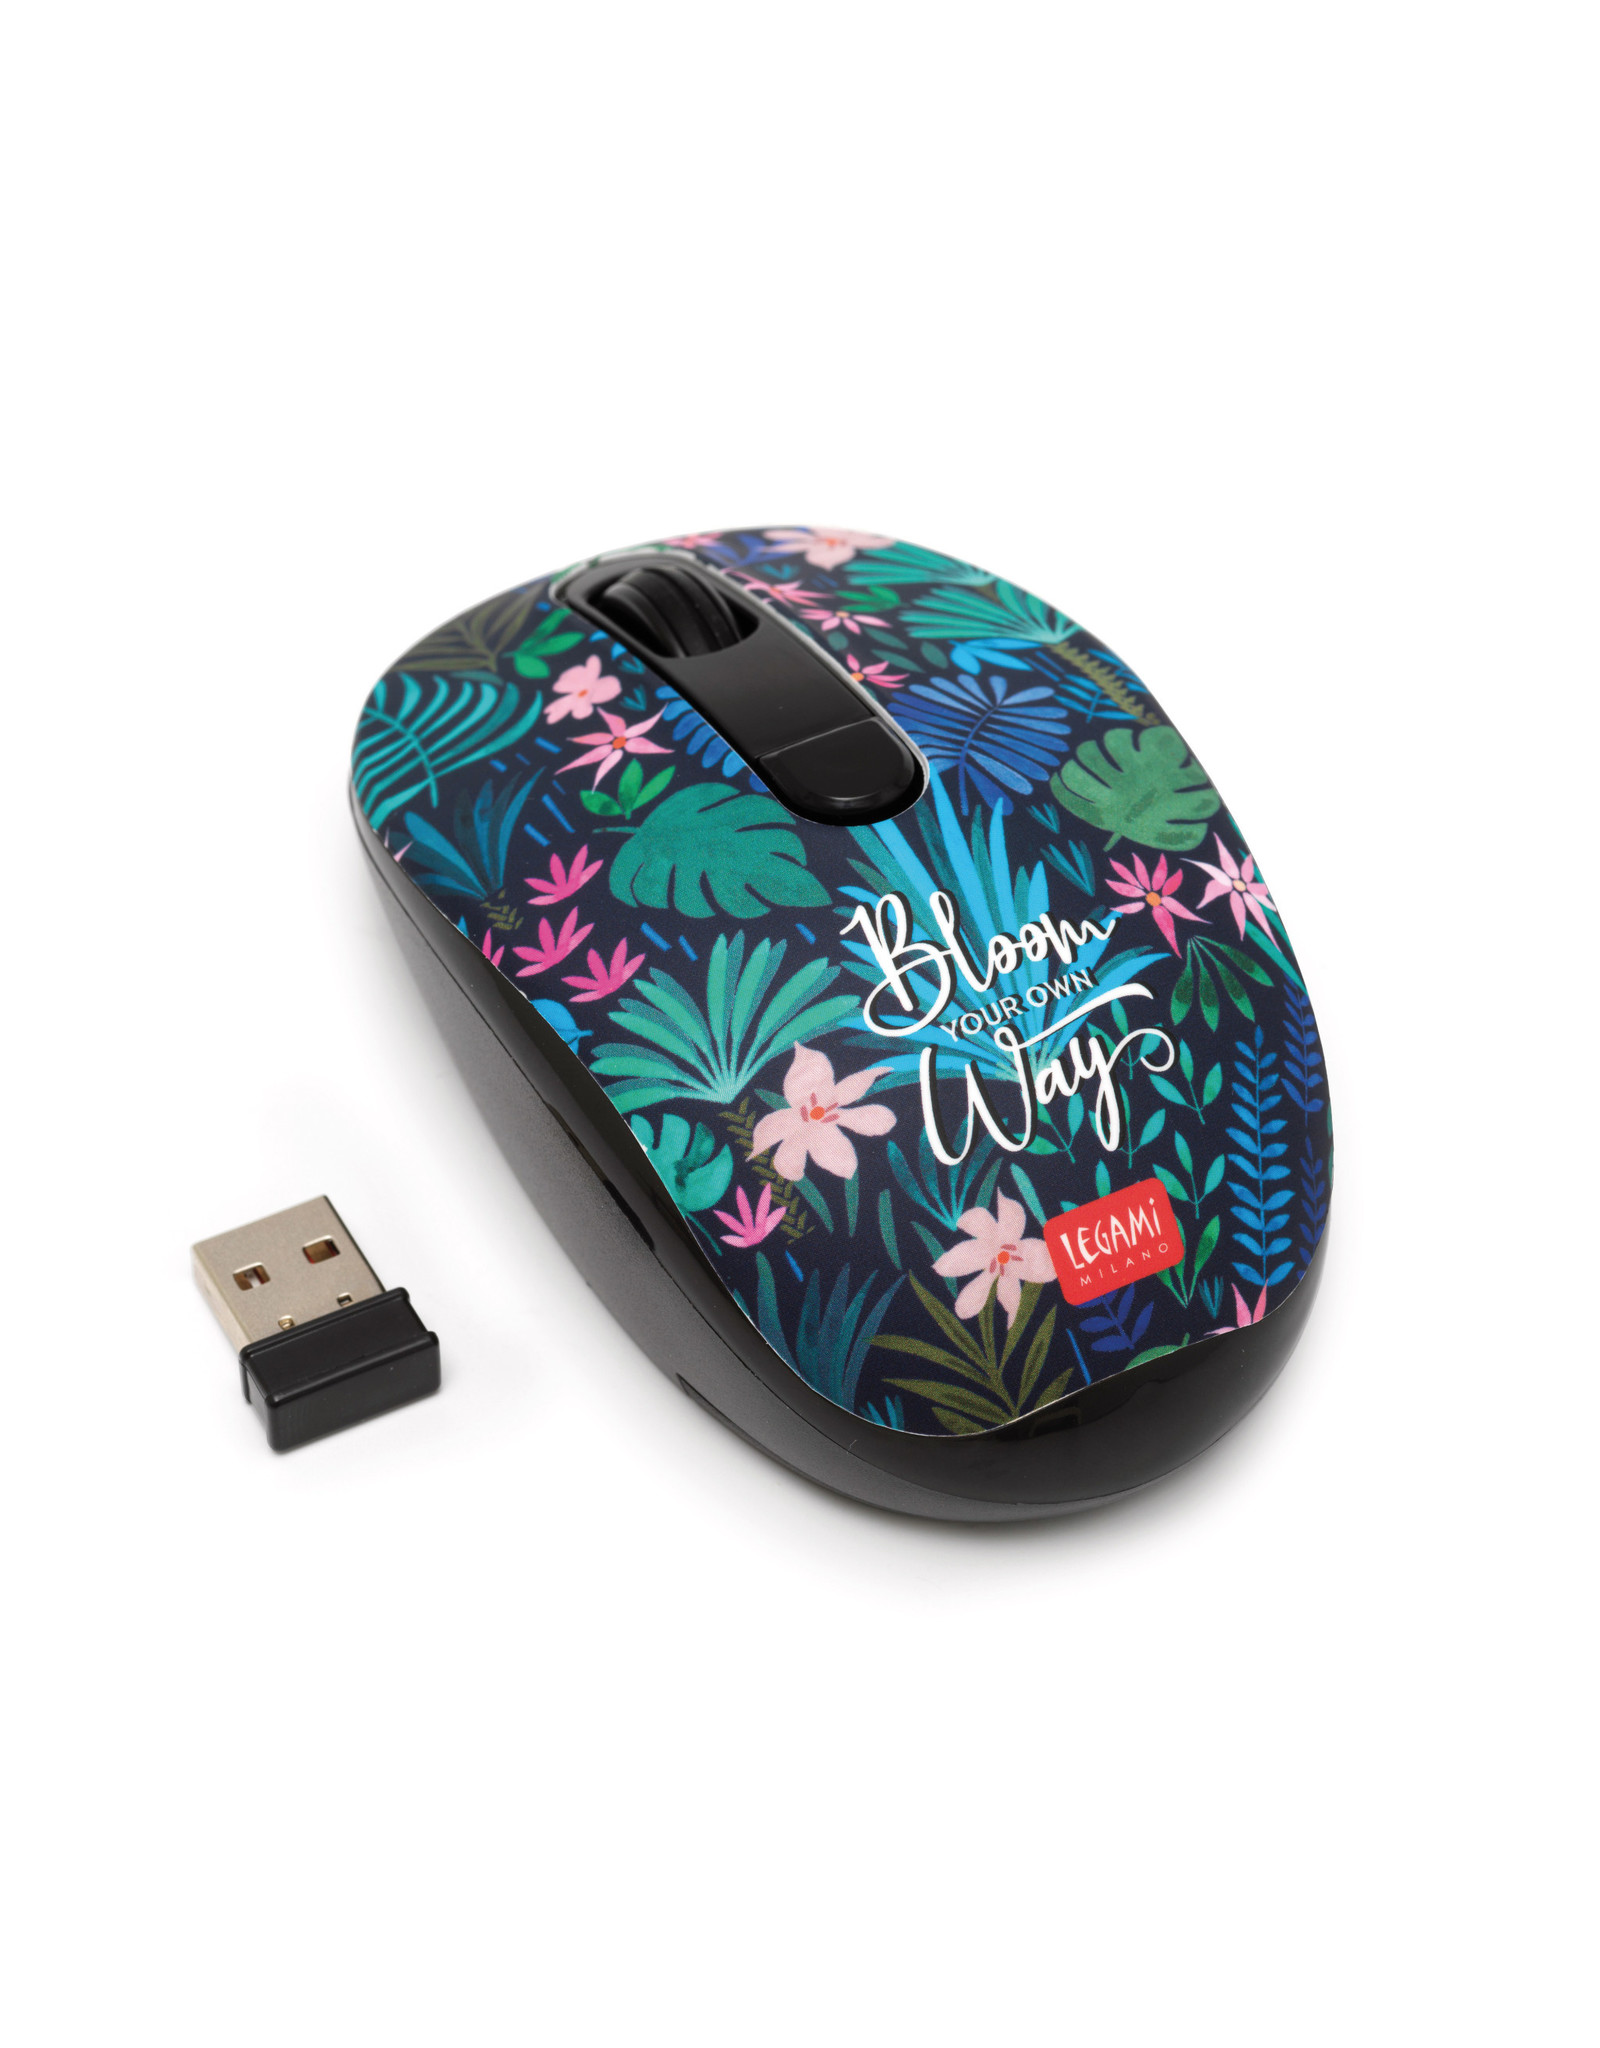 wireless mouse with floral print